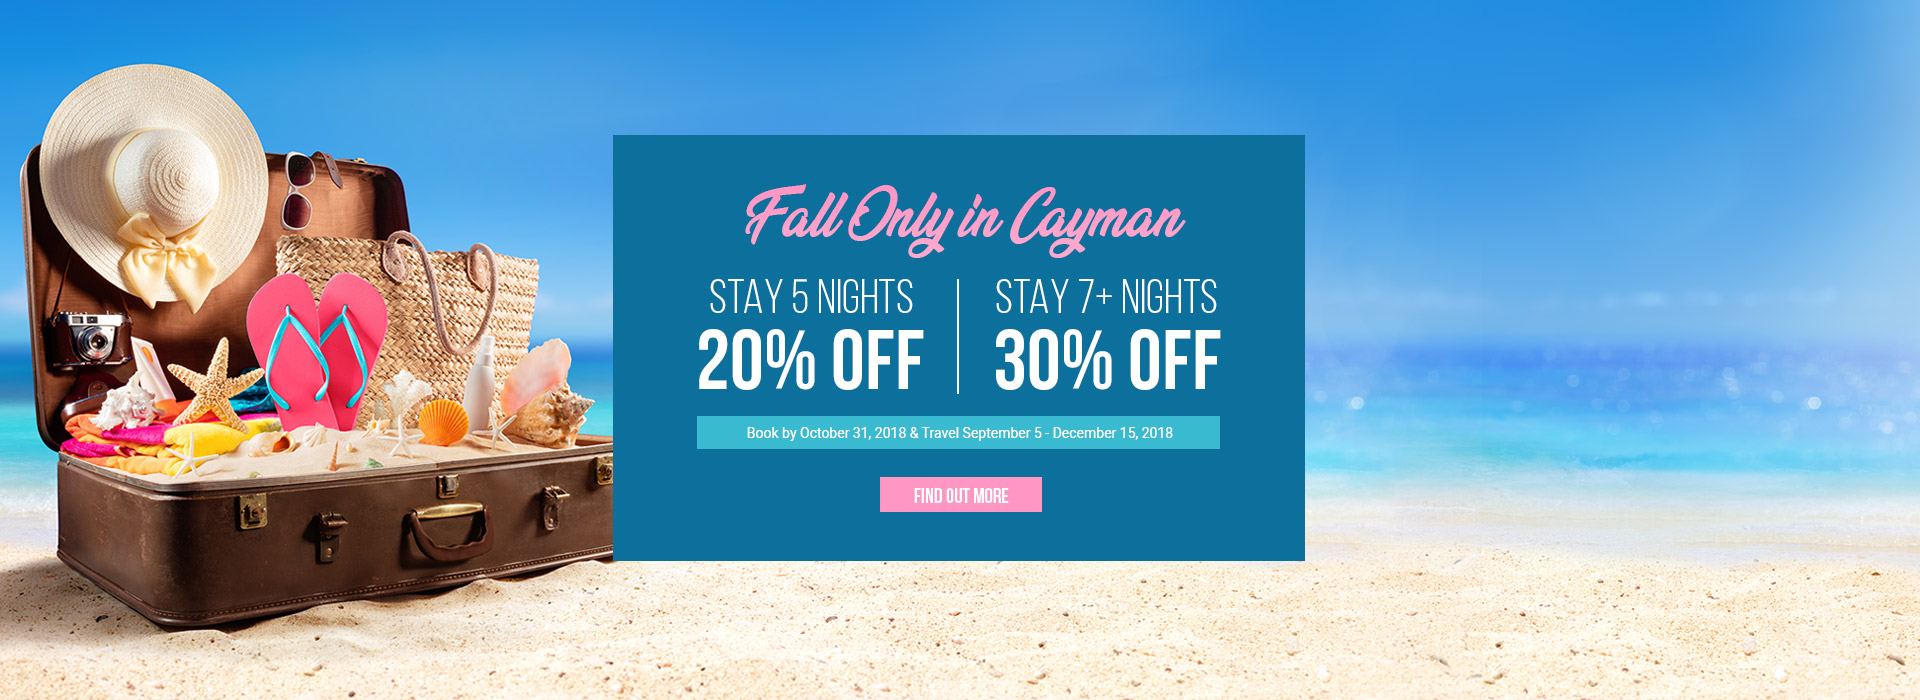 Aqua-Bay-Fall-Only-in-Cayman-Home-Banner